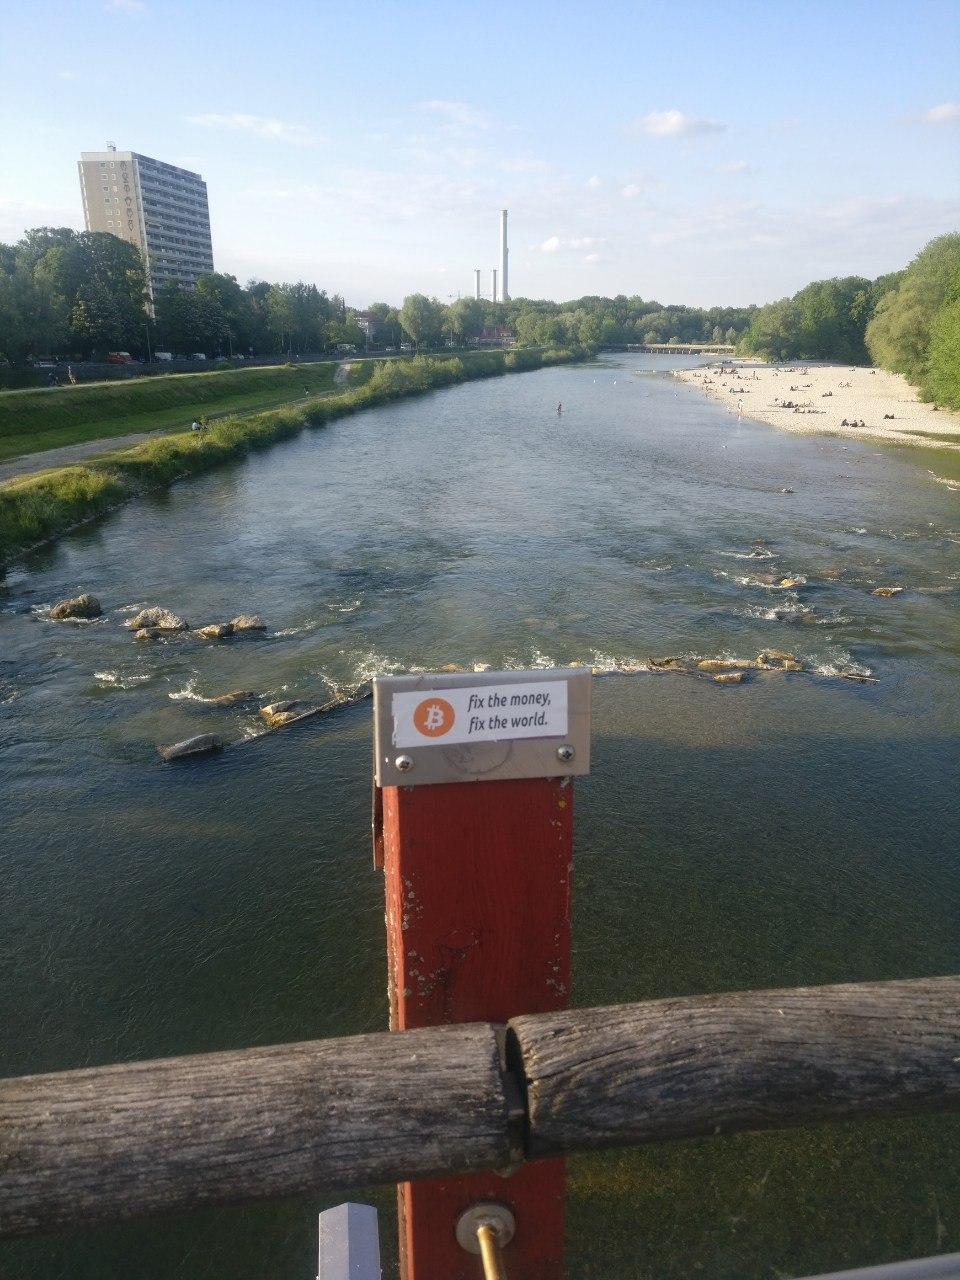 Bitcoin sticker over river